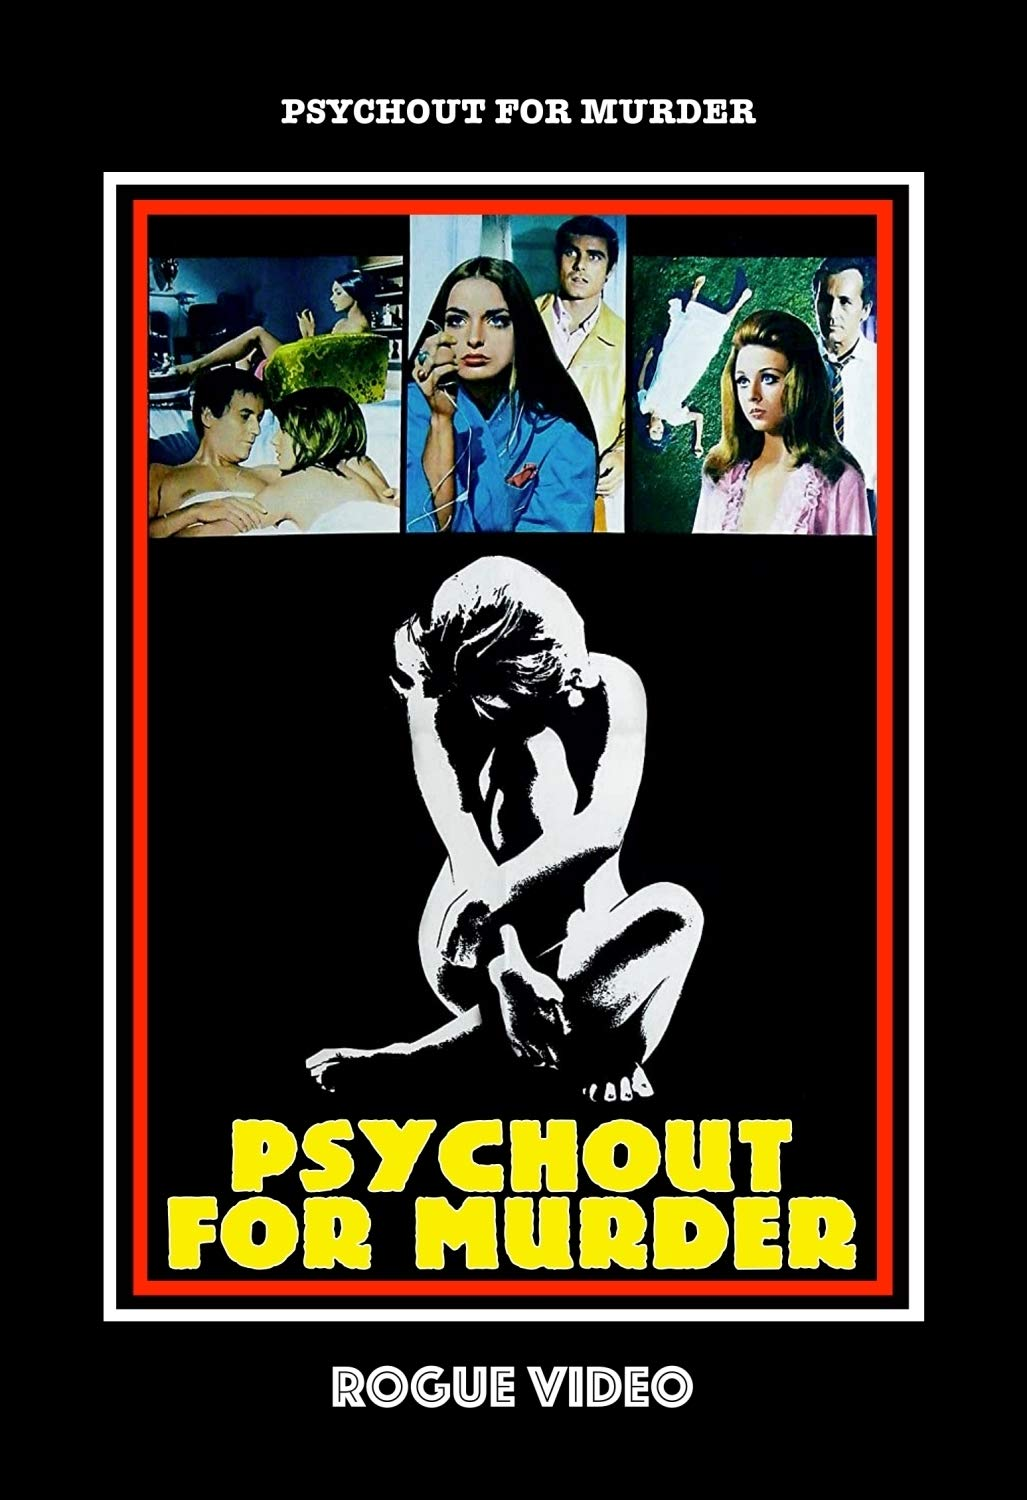 PSYCHOUT FOR MURDER (1969)